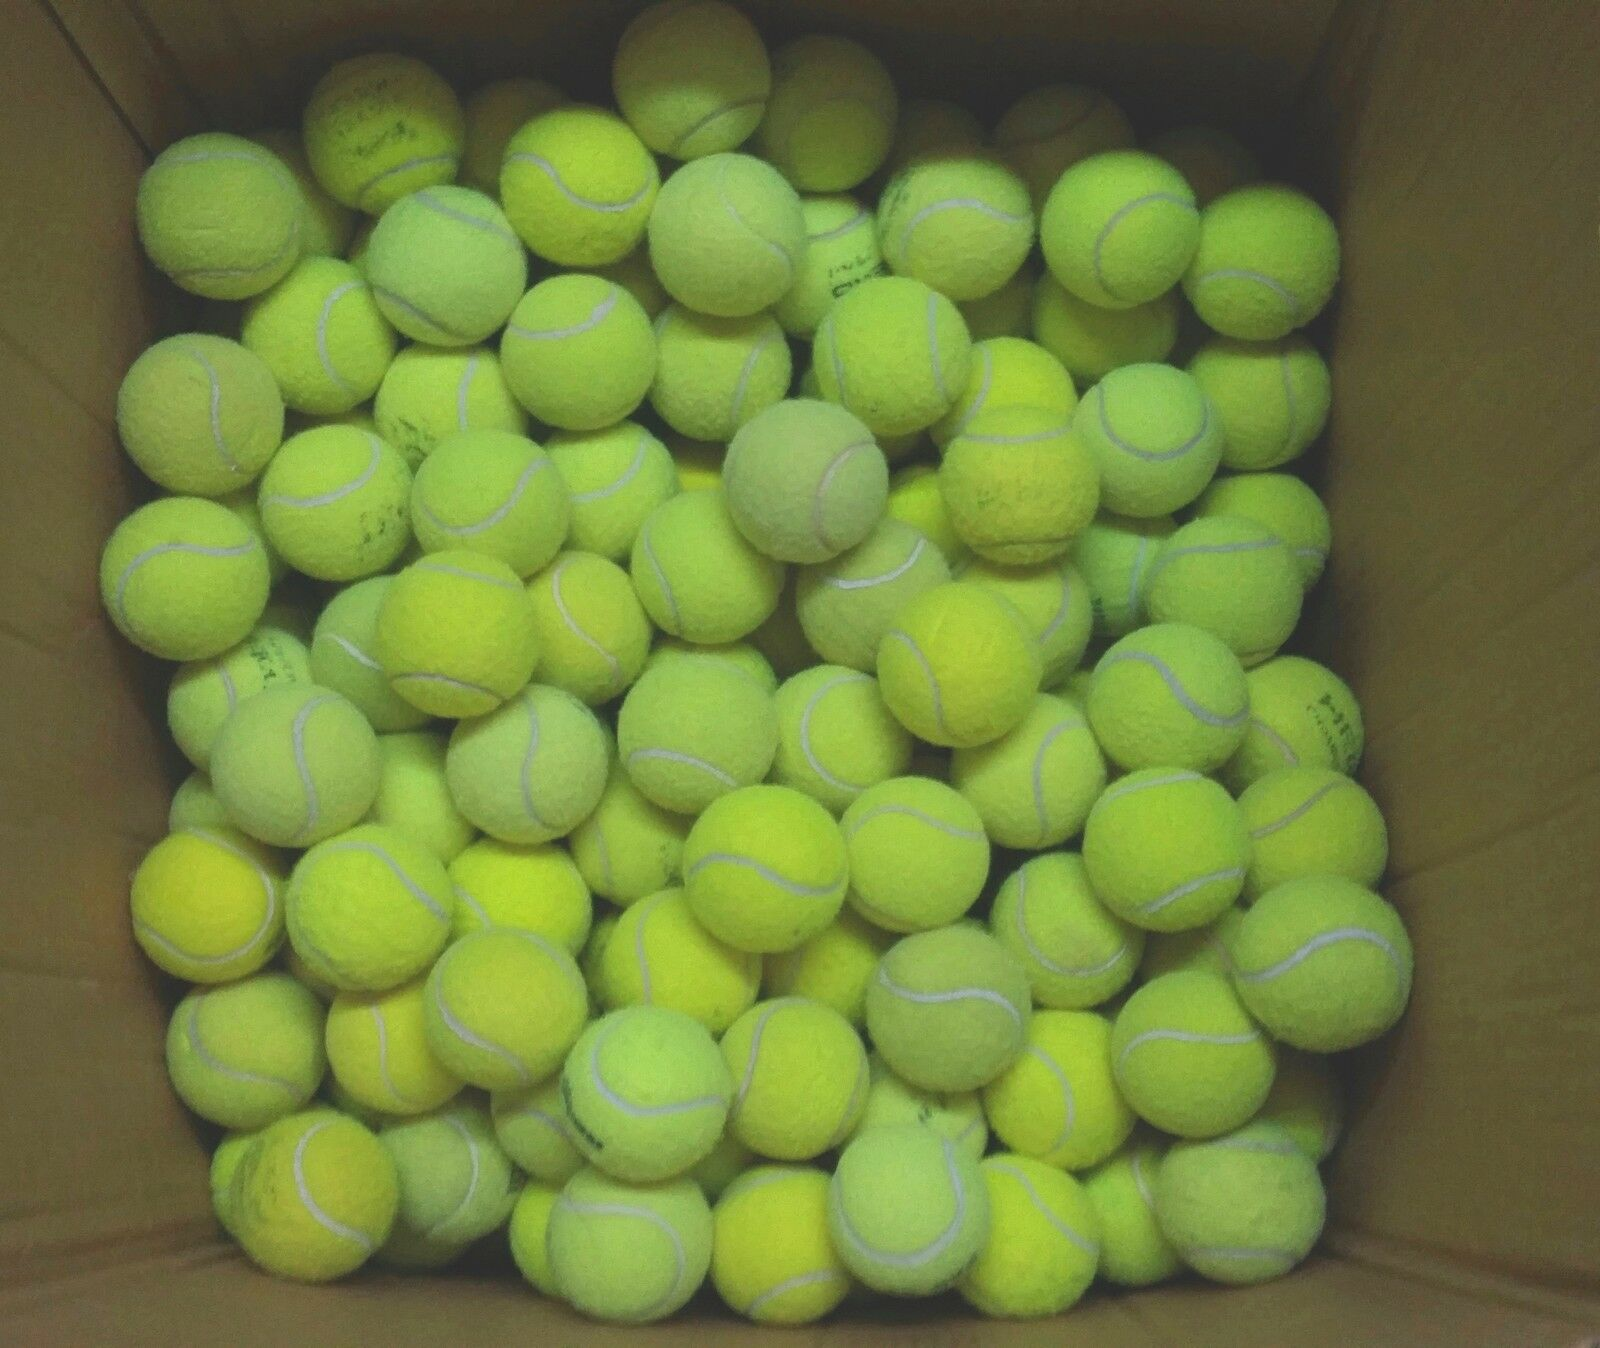 50 Used Tennis Balls For Dogs (30+20) Dog Ball / Toy. Machine Washed & Sanitised